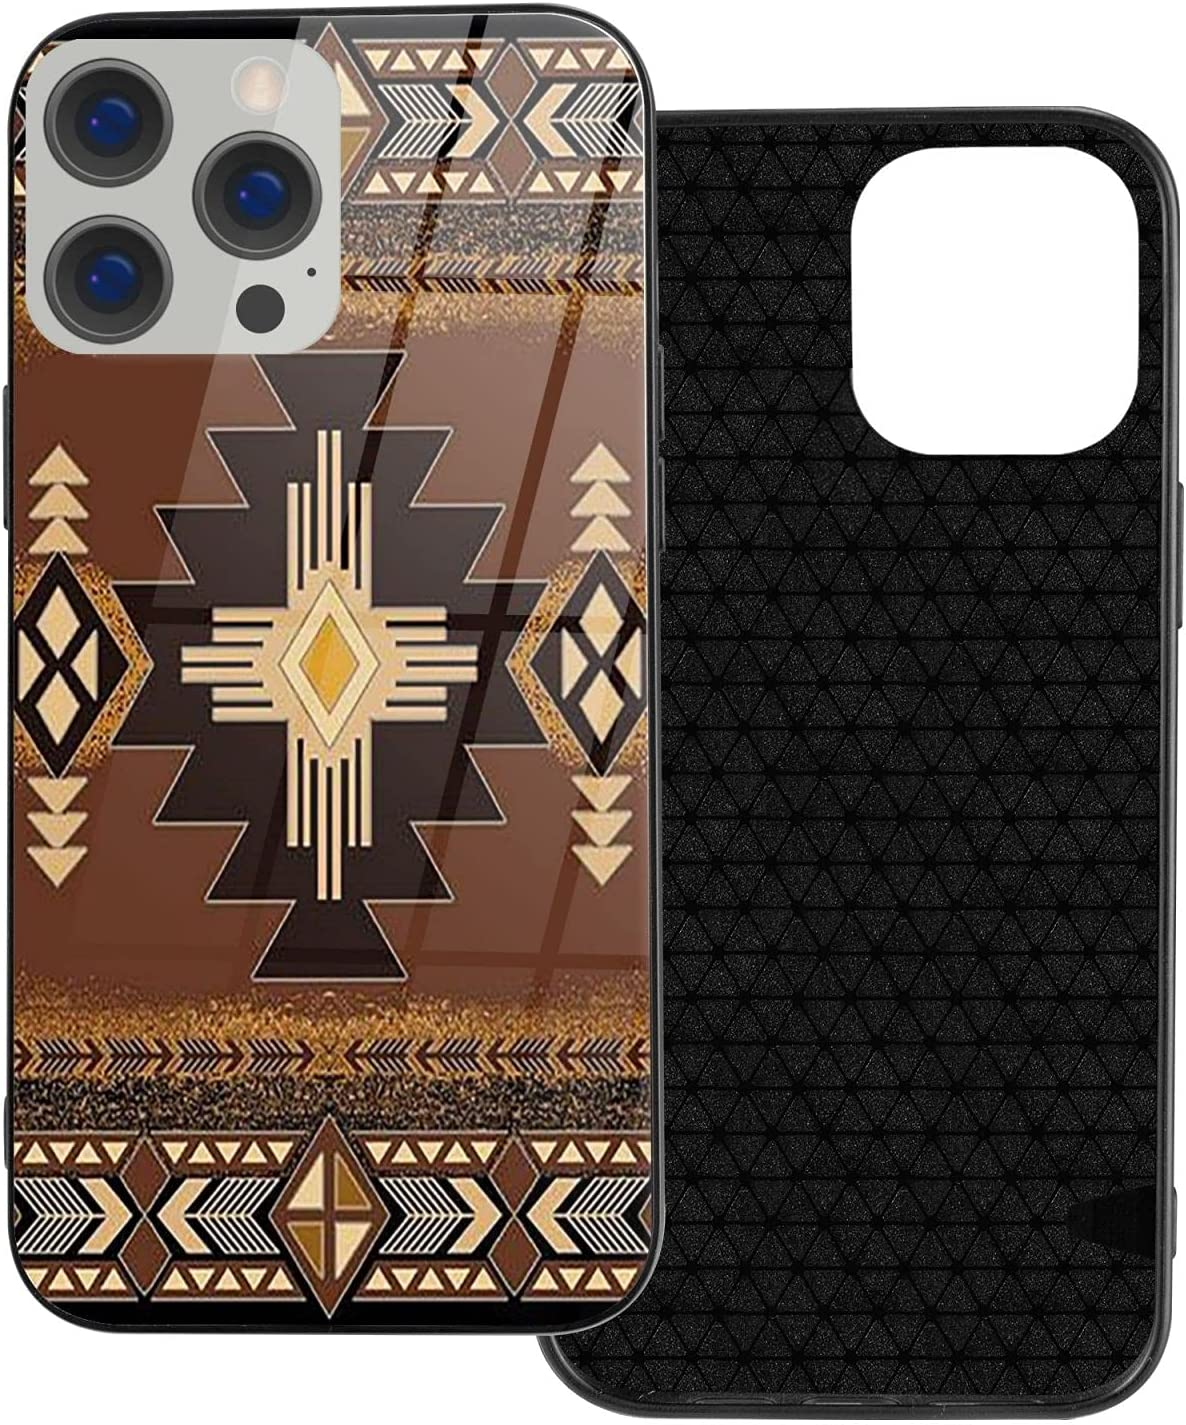 iPhone 12 / iPhone 12 Pro/iPhone 12 Mini/iPhone 12 Pro Max Mobile Phone Case Southwestern American Native Indian Tribal Pattern TPU Glass Mobile Phone Cover Protective Shell